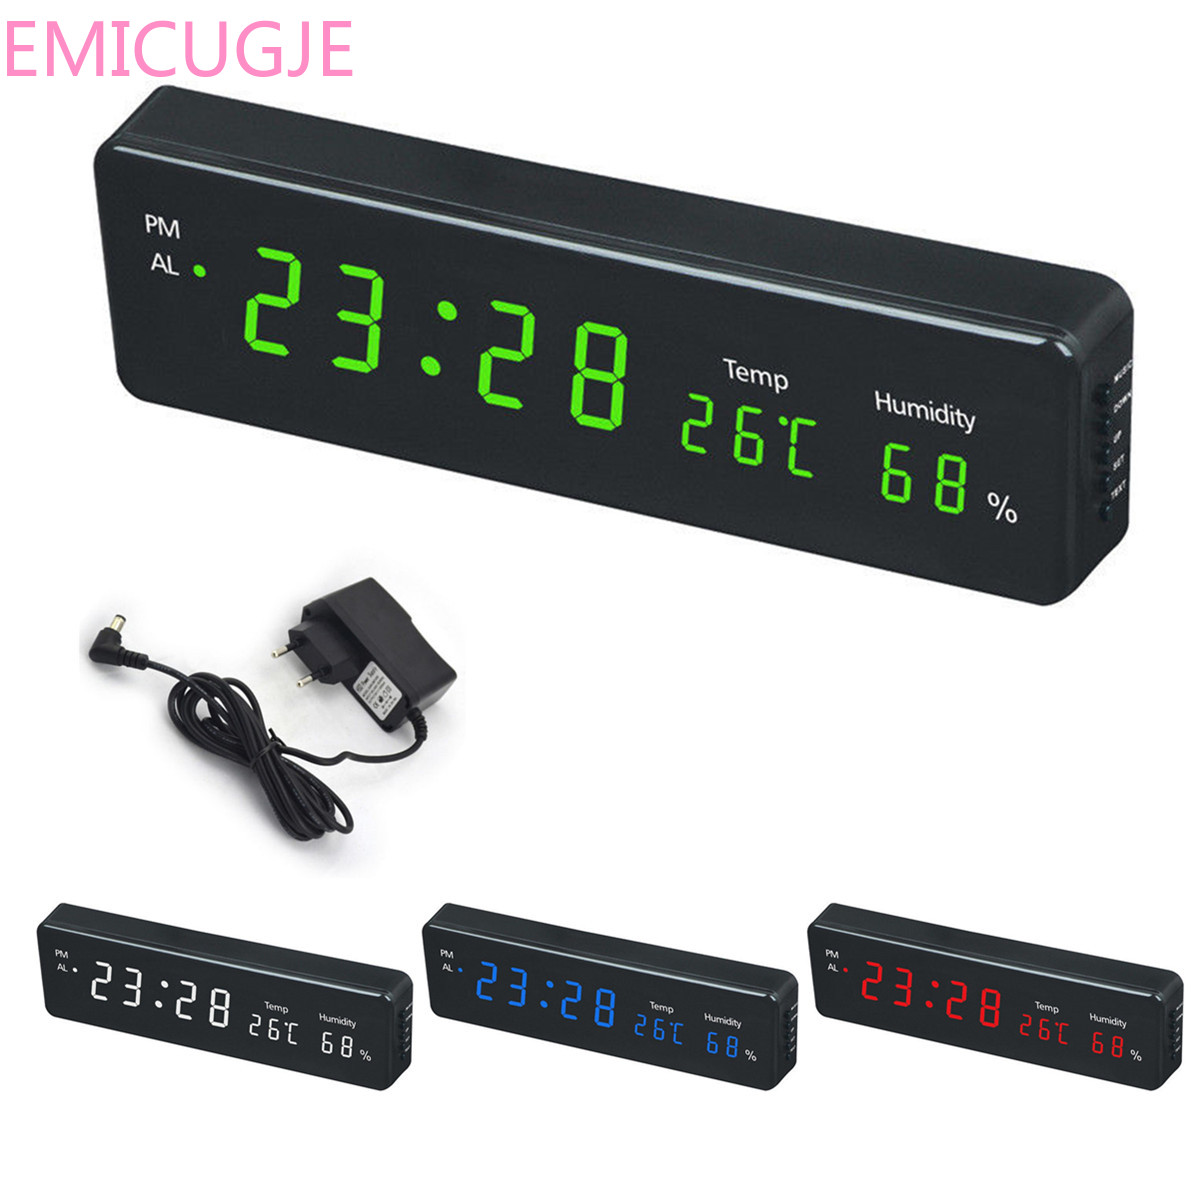 Table Clocks Electronic LED Wall Watch Decor EU Plug Digital Wall Clock Big LED Time Calendar Temperature Humidity Display Desk